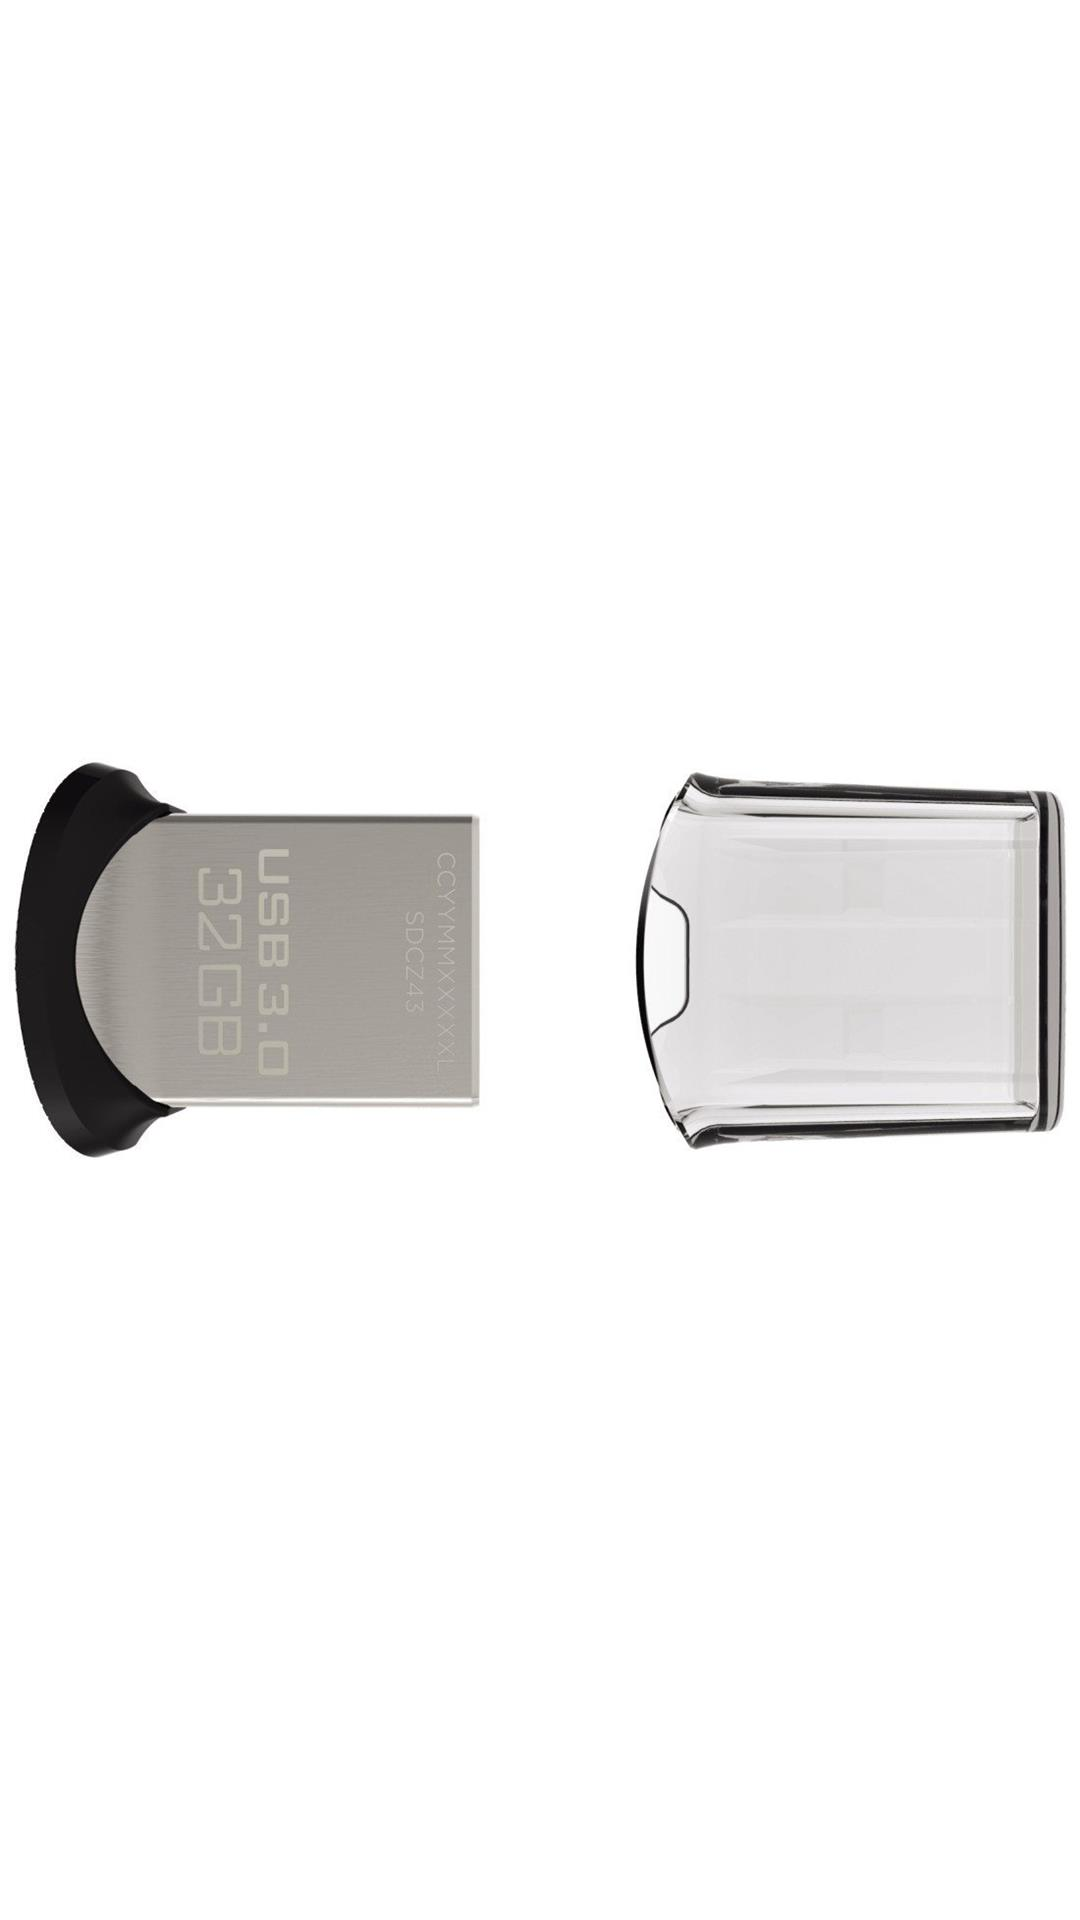 SanDisk SDCZ43-032G USB 3.0 32 GB Utility Pen Drive (Silver)